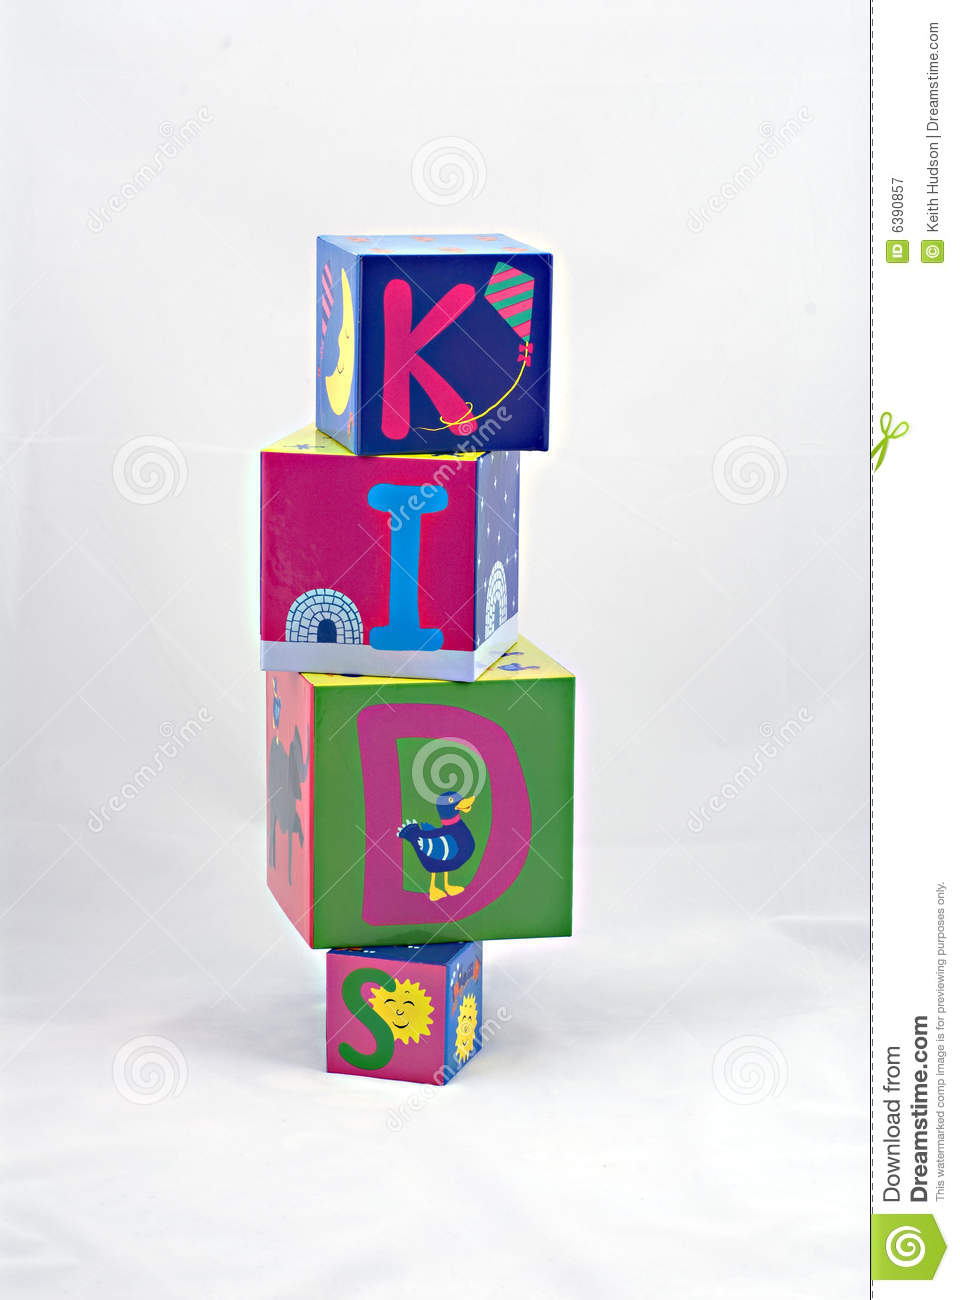 Kids spelled with blocks